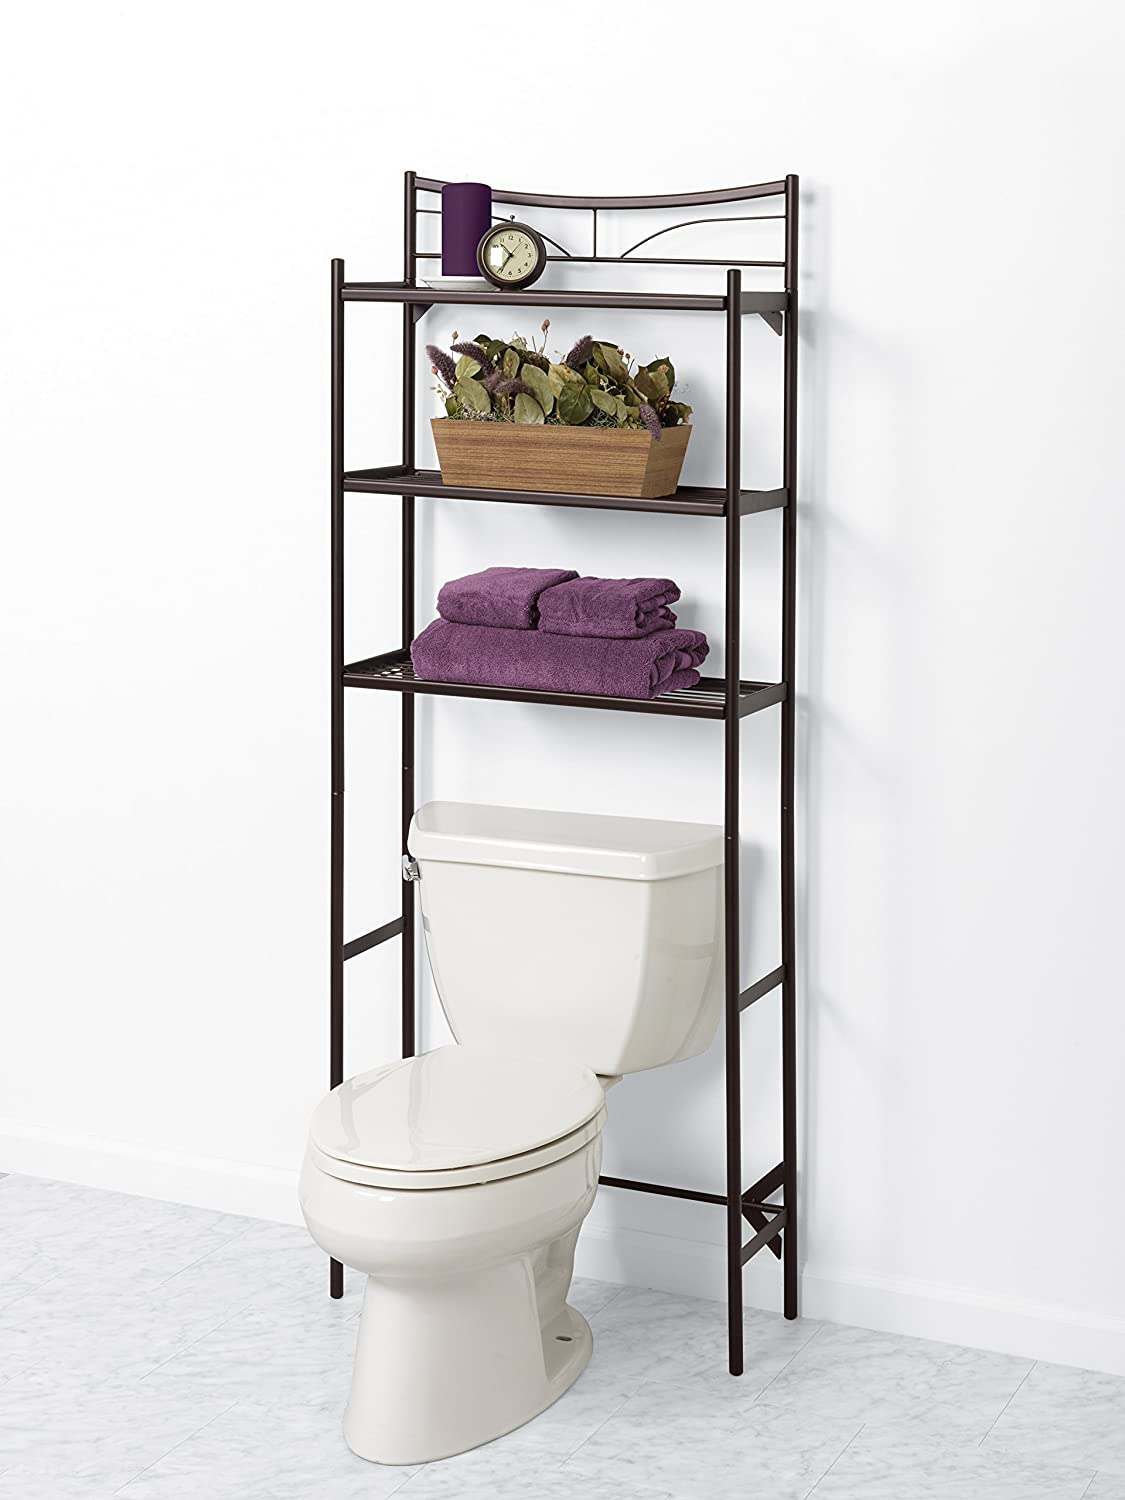 Bathroom Spacesaver Over Toilet Shelves Storage Metal Bronze Space Saver Shelf Ebay